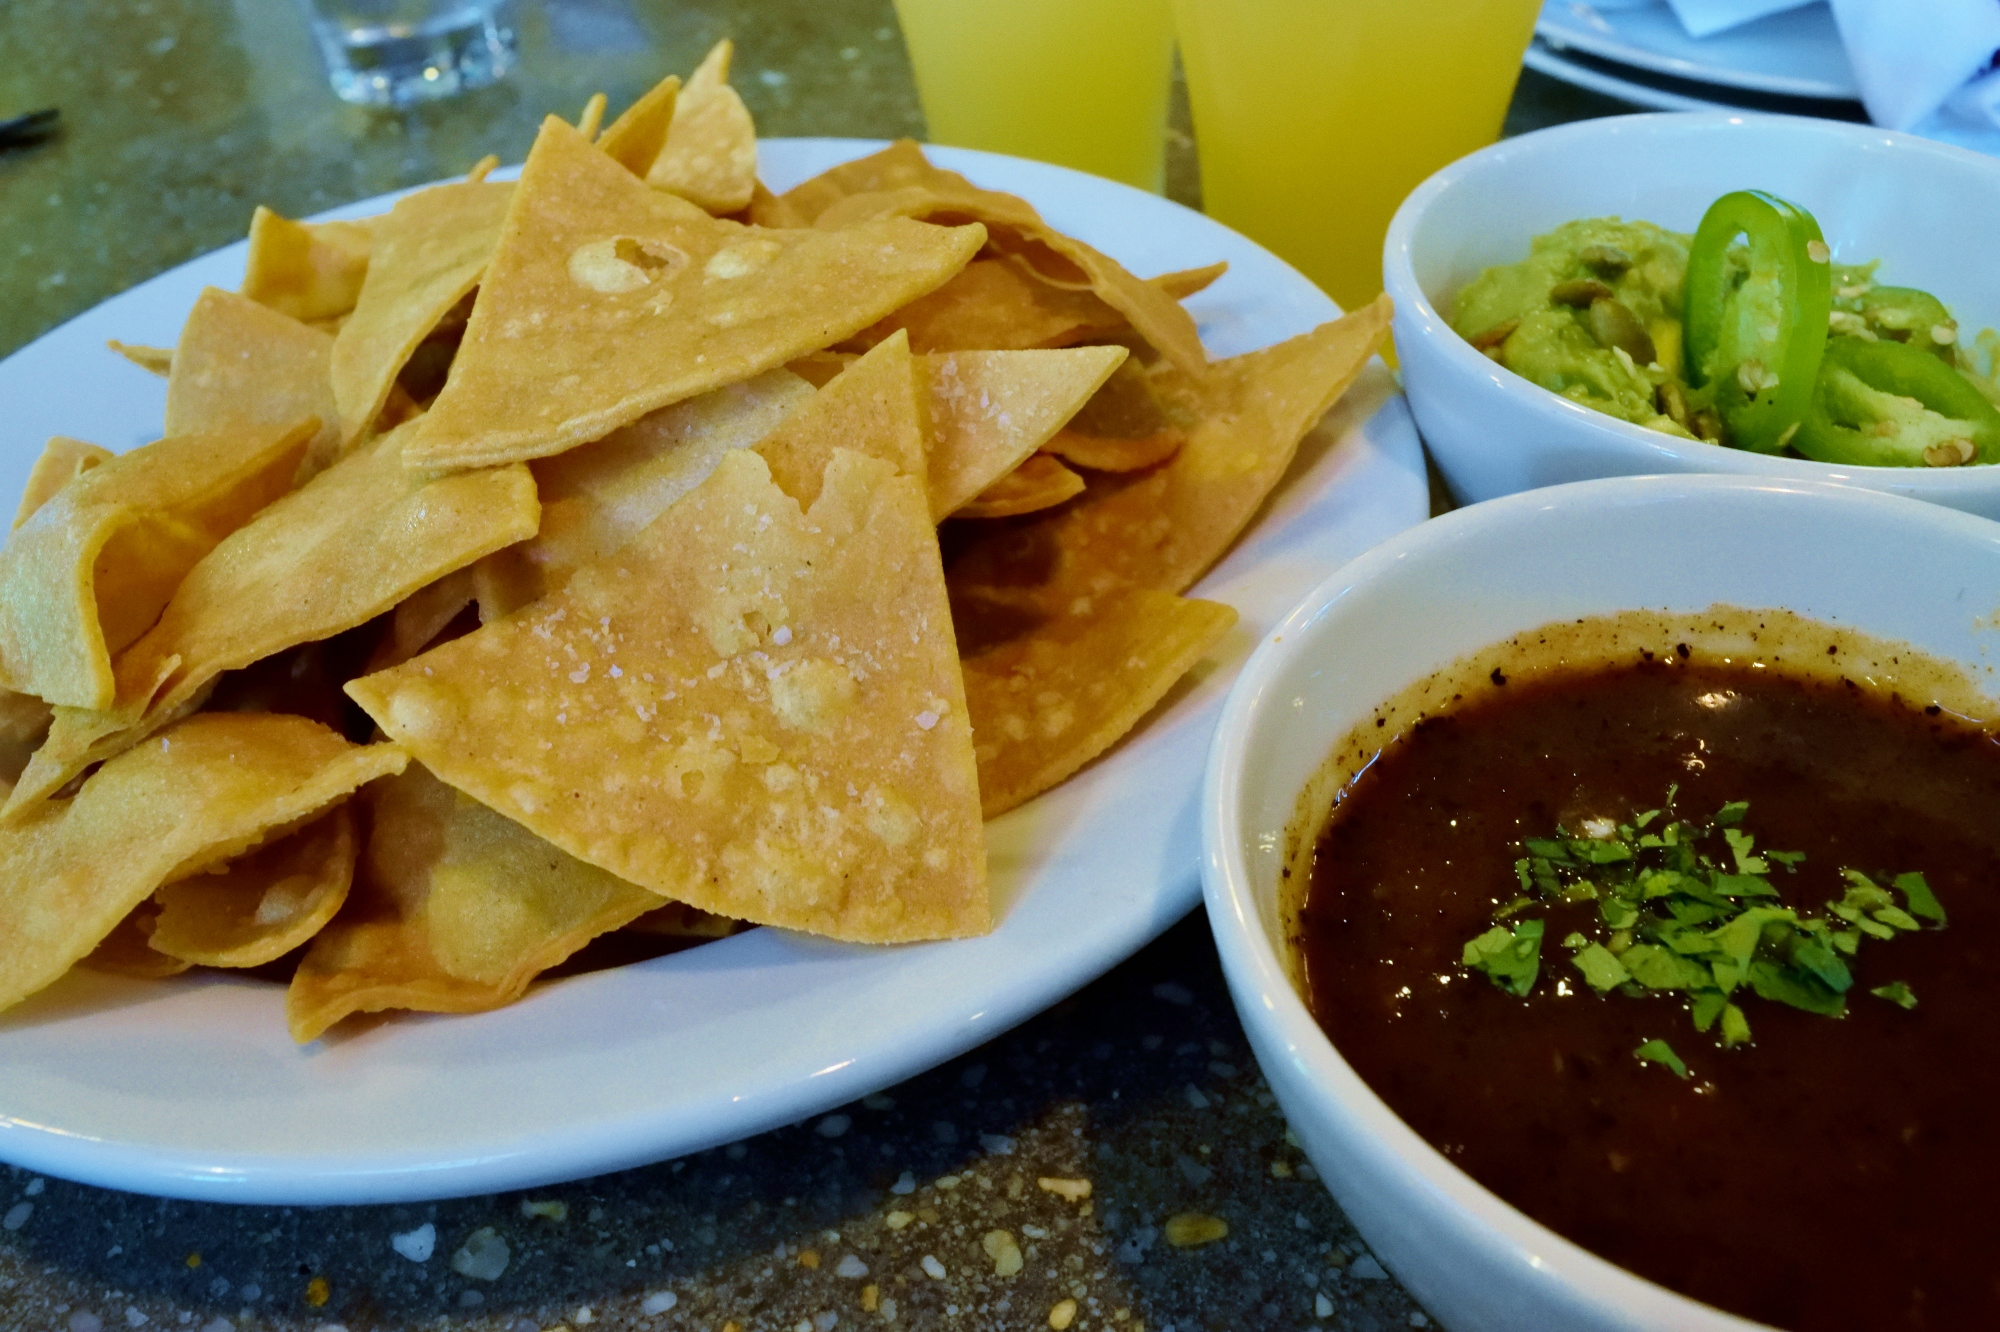 Chips and stuff - More like the only time I've had guacamole I liked.